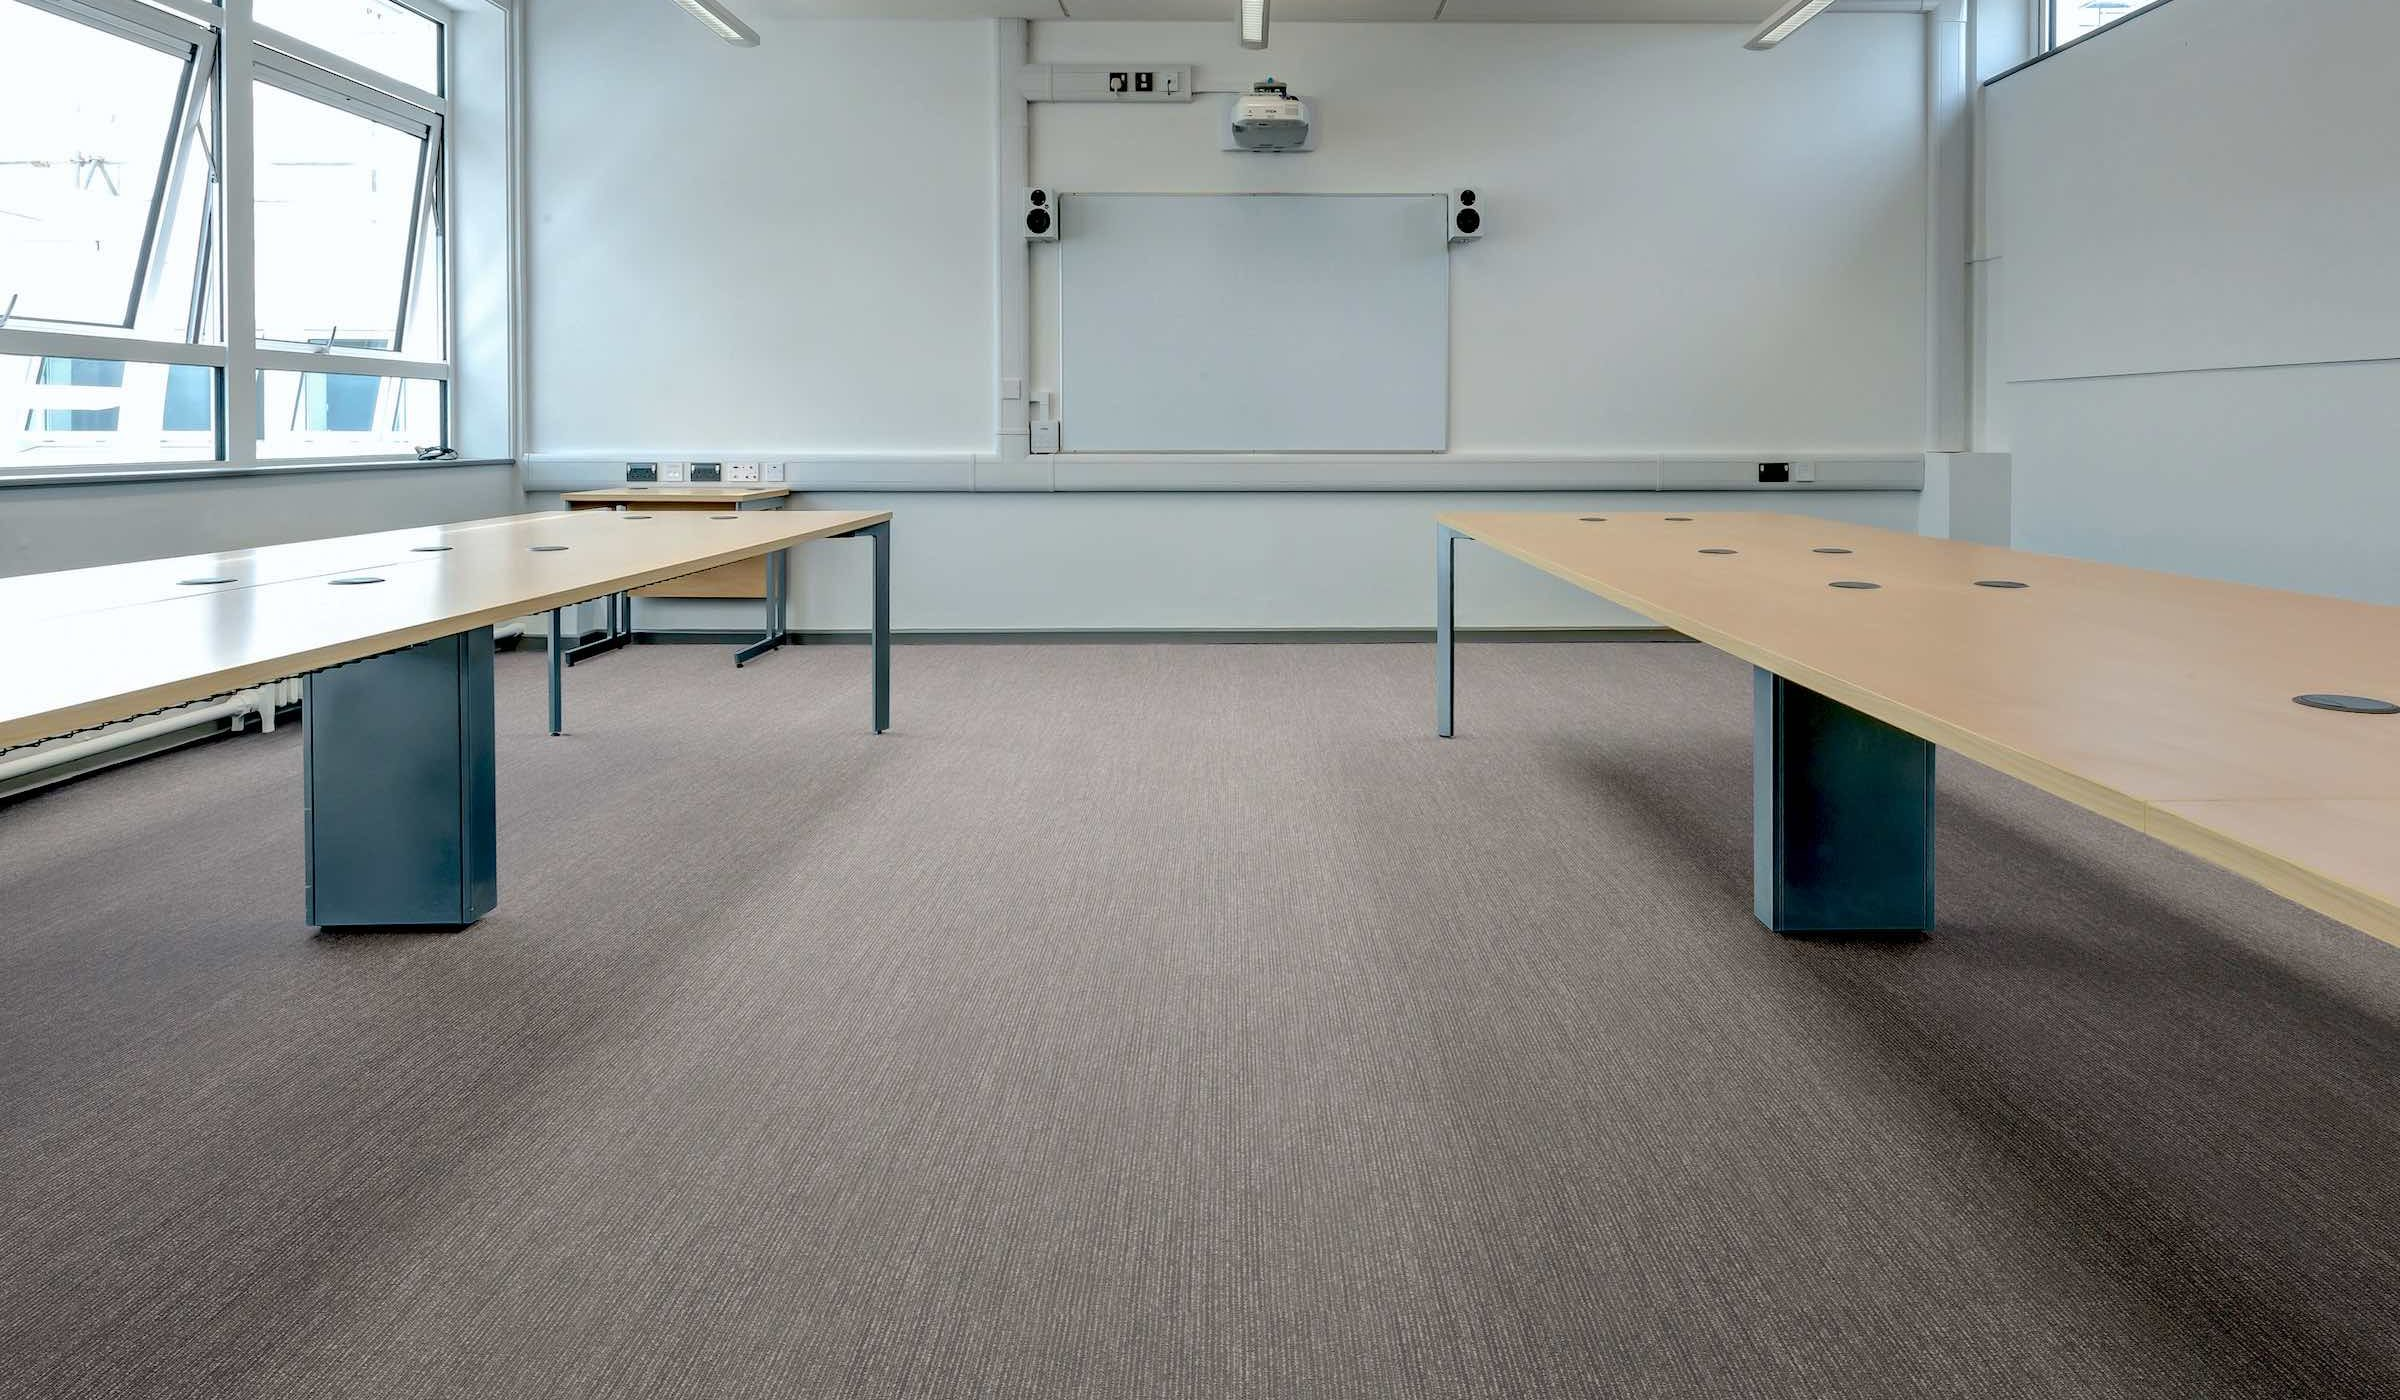 Workspace Linear | Paragon Carpet Tiles | Commercial Carpet Tiles | Design Carpet Tiles 3